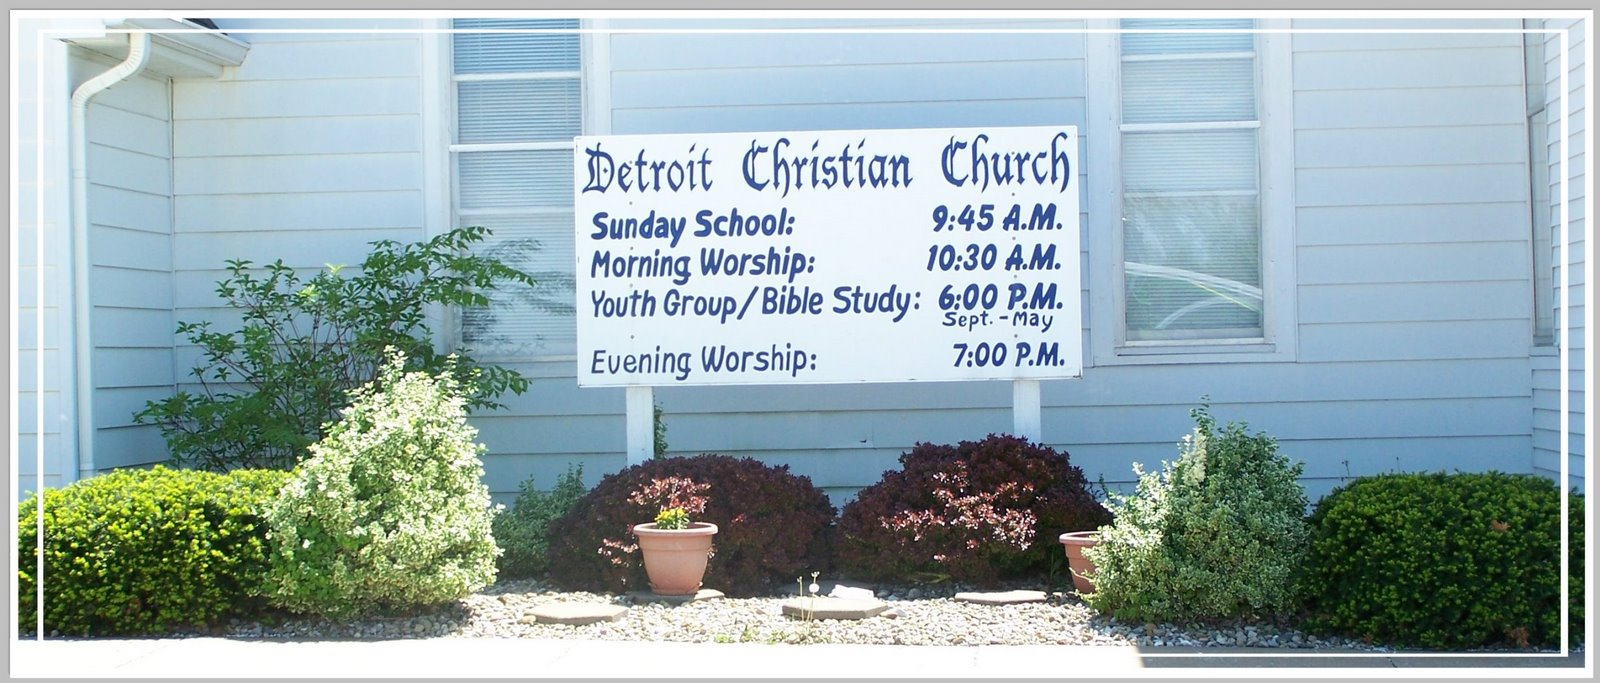 Detroit Christian Church